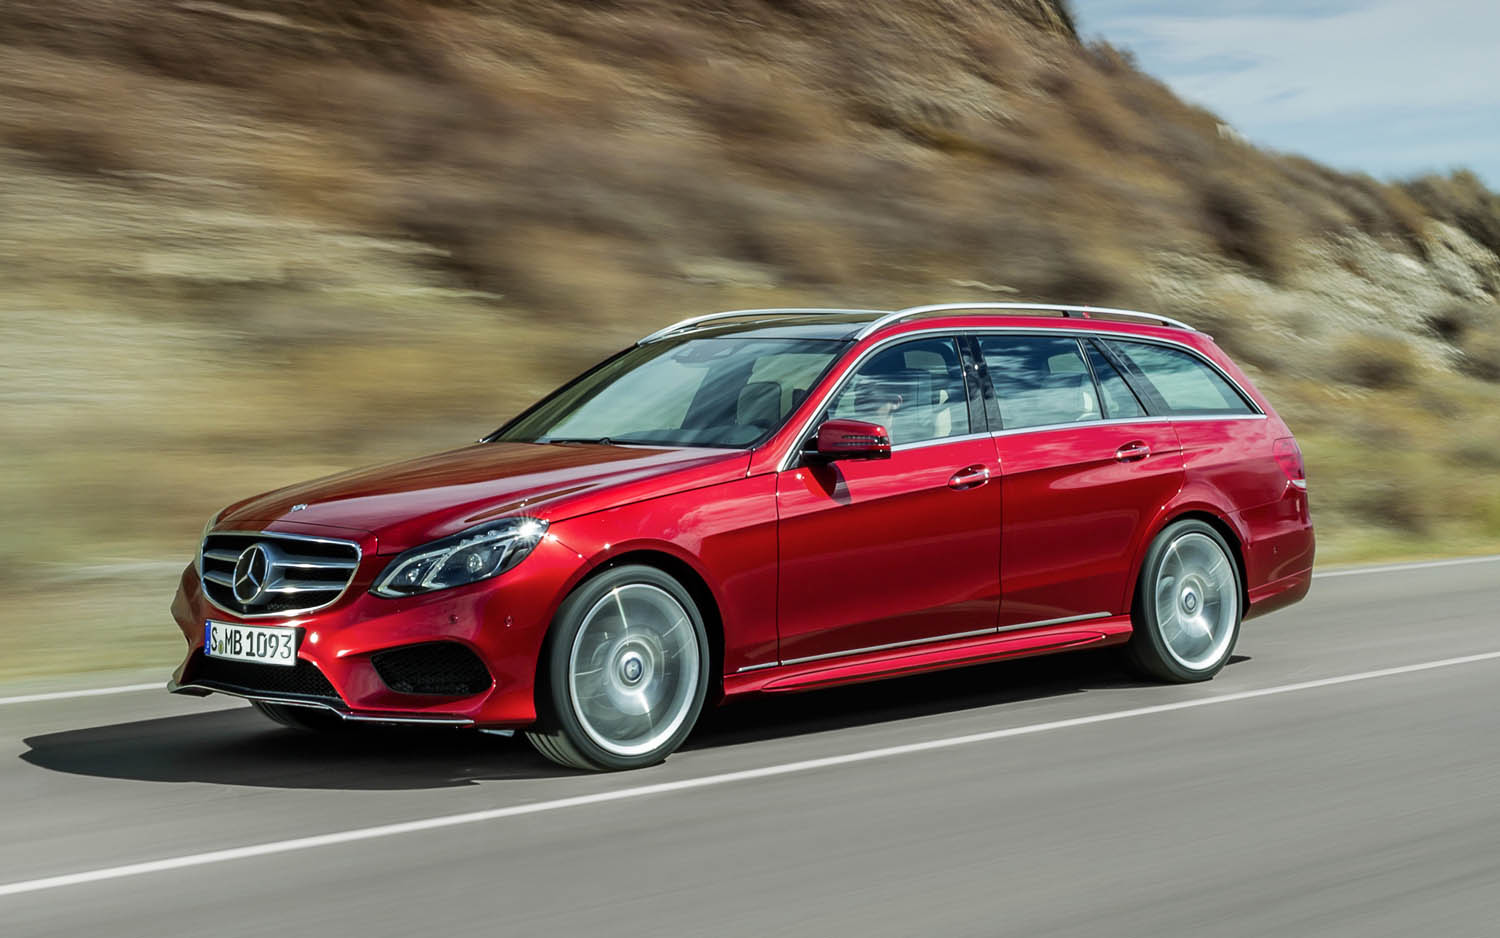 Thread Of The Day: Three Row AWD Luxury Haulers   Mercedes Benz GL450 SUV  Or E350 Wagon?